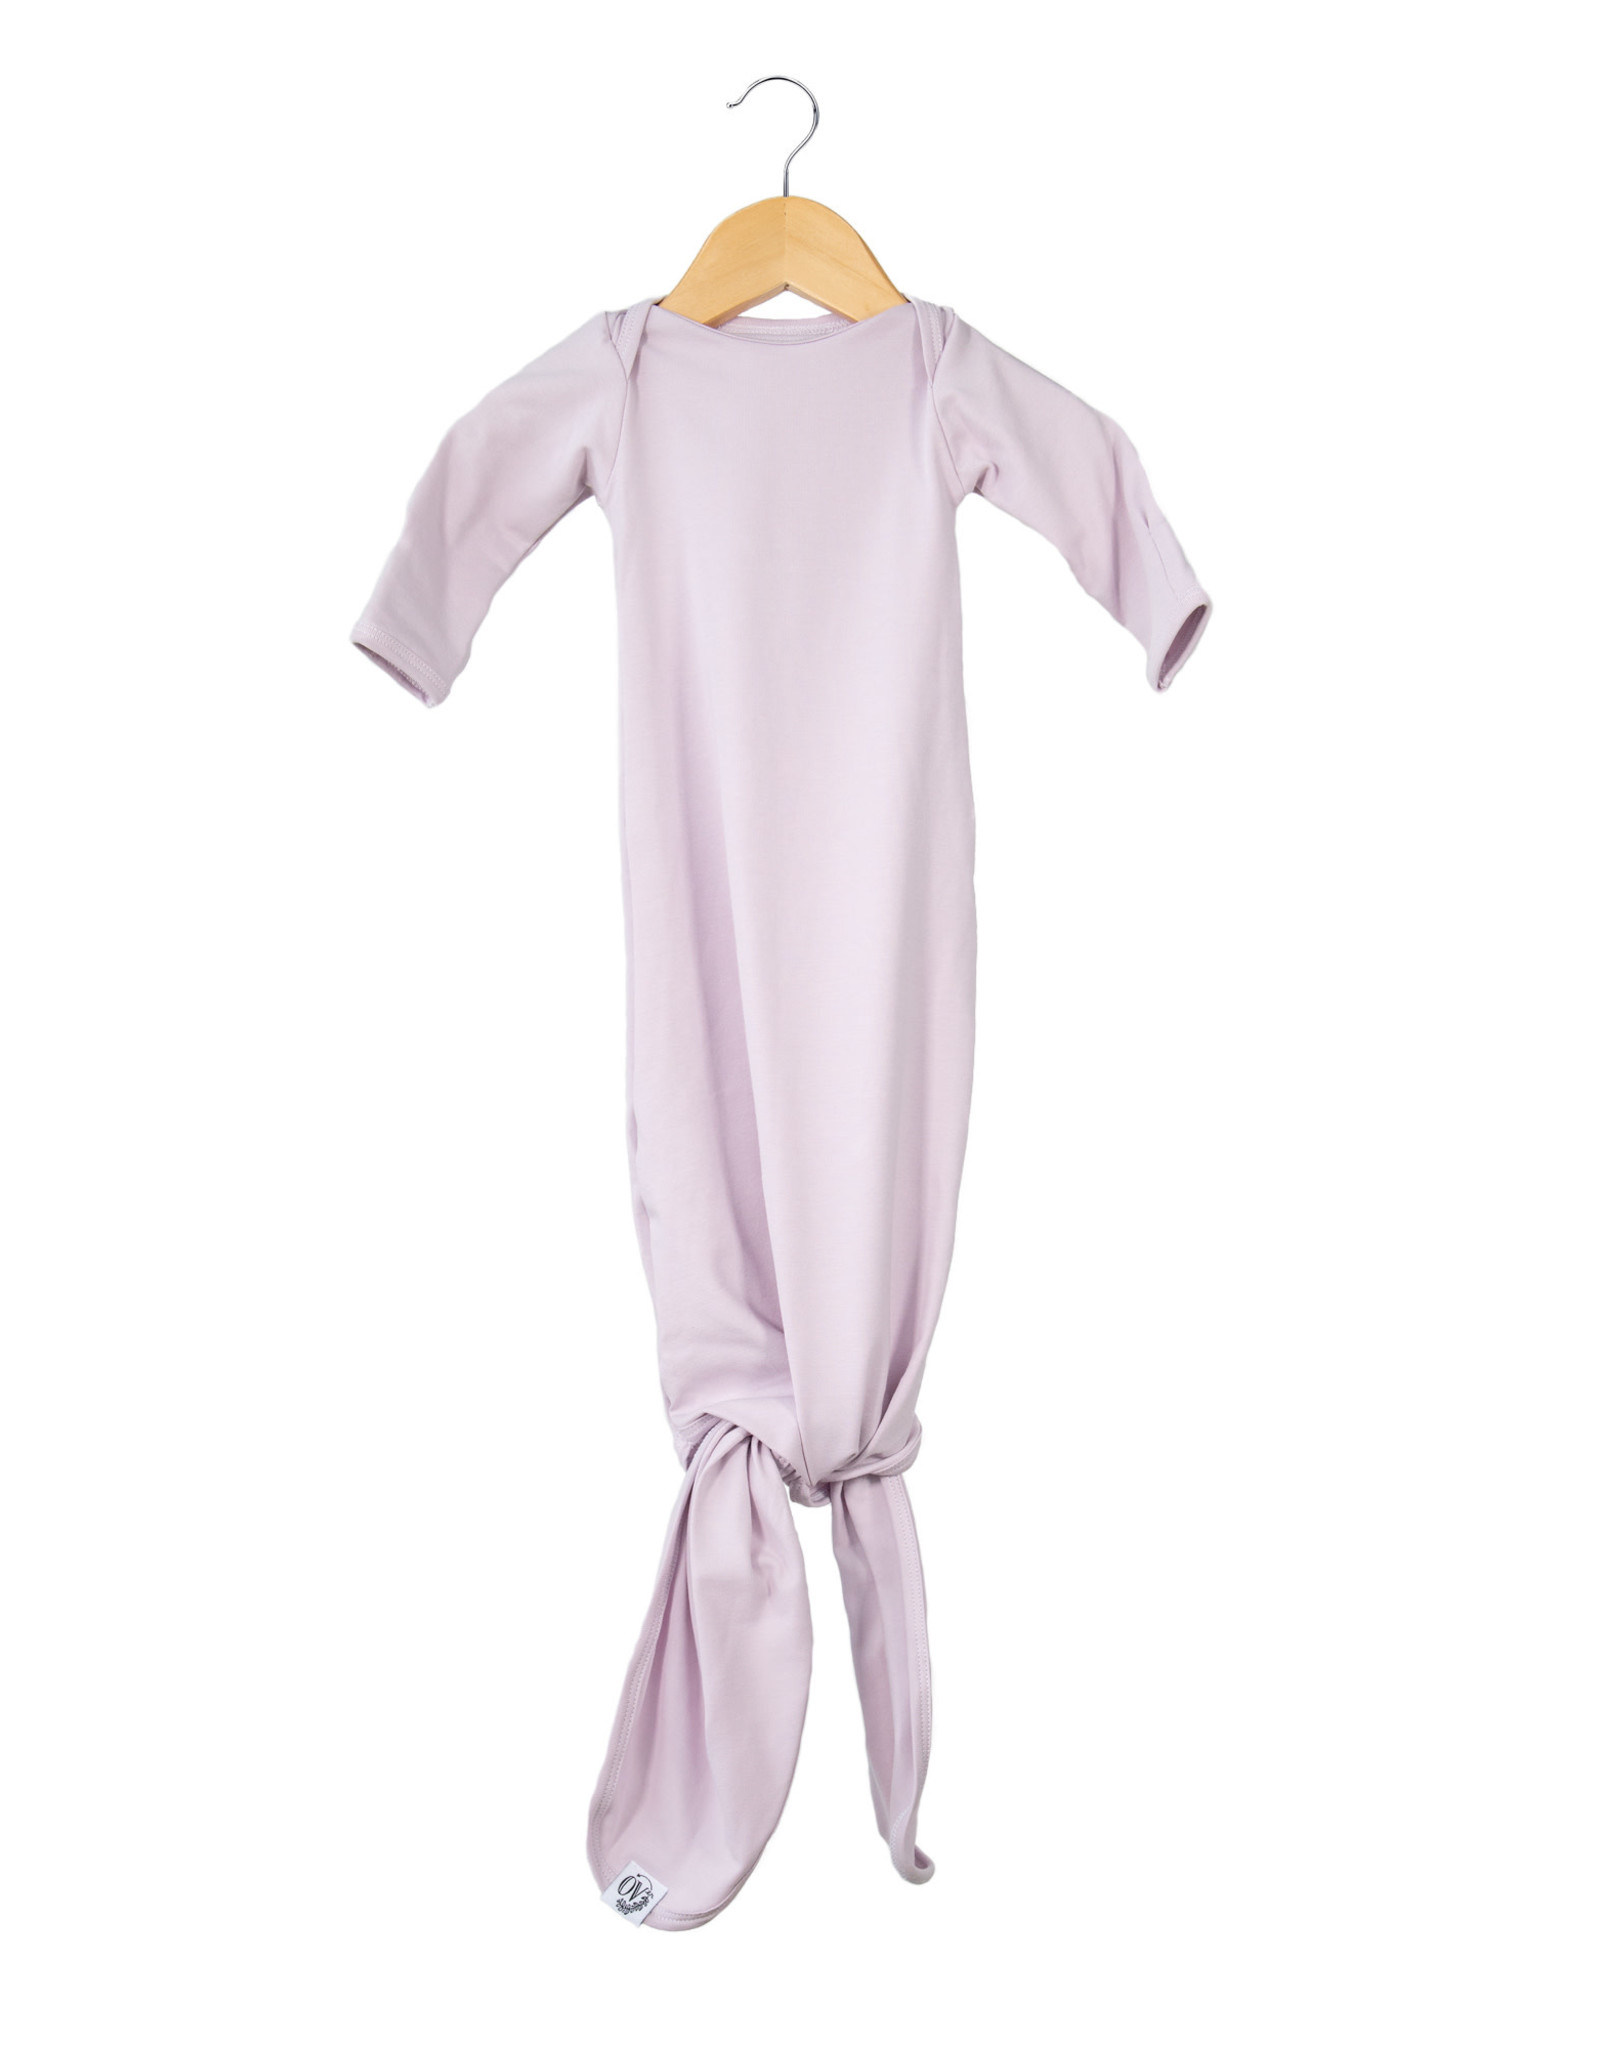 The Over Company The OVer Company Nodo Gown - Grace - 0-3M